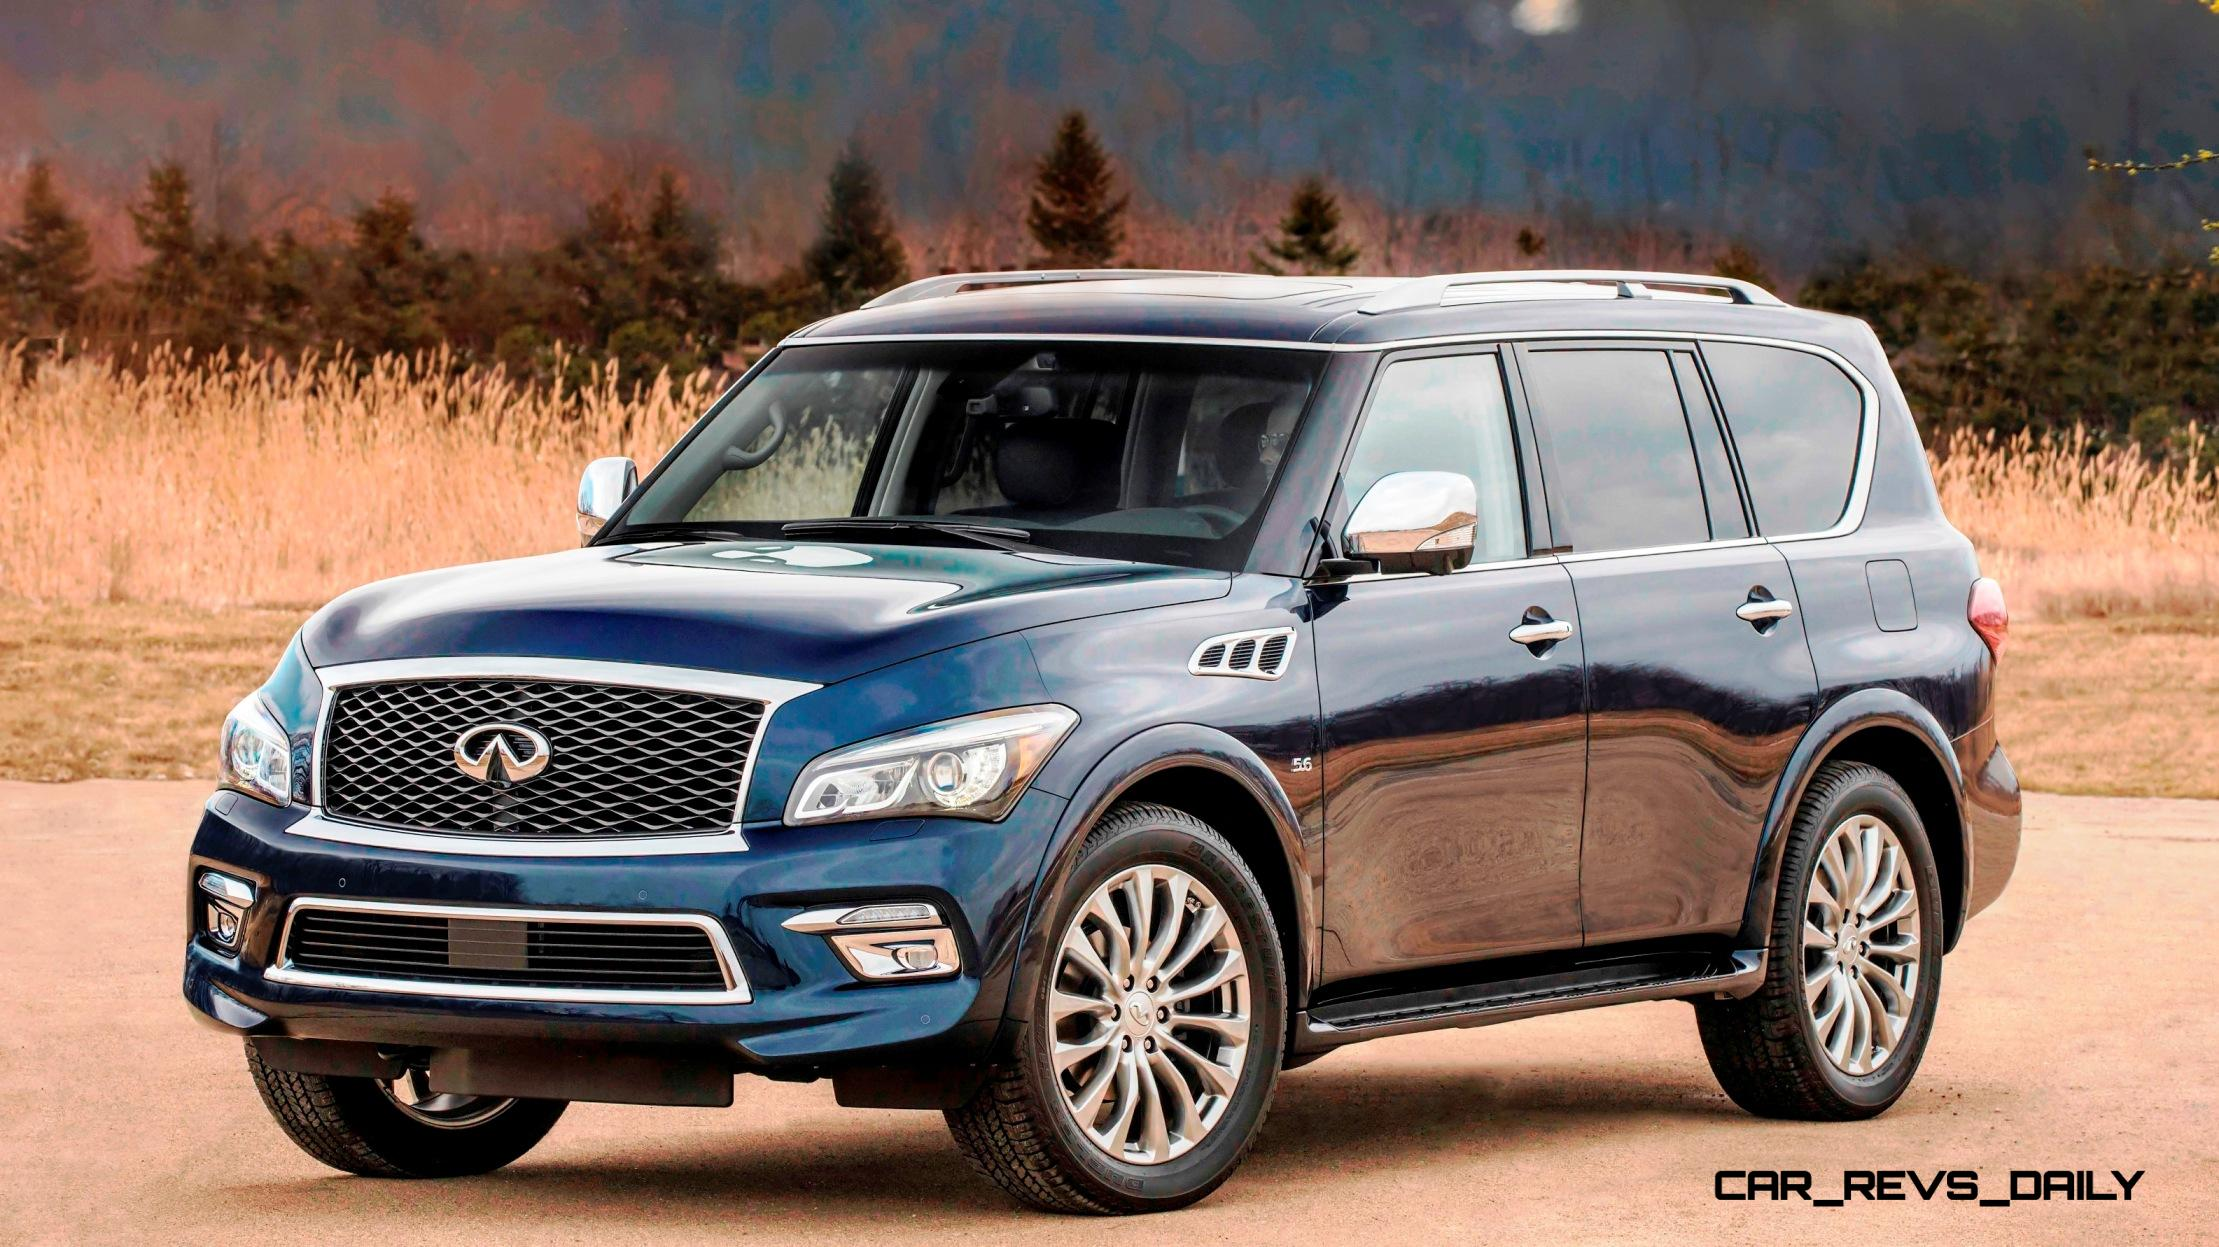 2015 INFINITI QX80 Pebble Beach Photos + Specs, Options ...